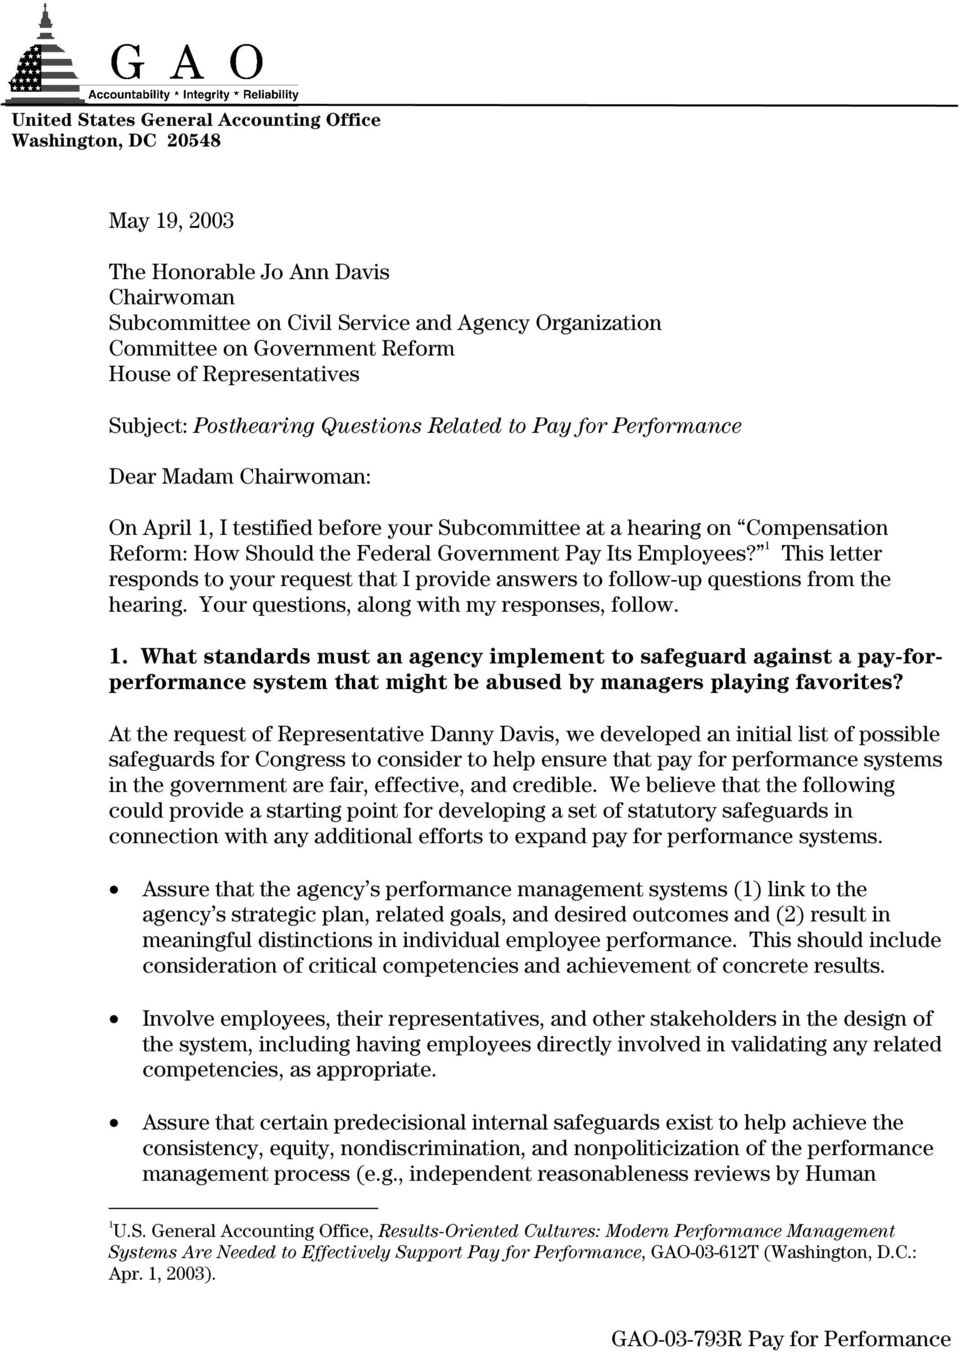 Should the Federal Government Pay Its Employees? 1 This letter responds to your request that I provide answers to follow-up questions from the hearing. Your questions, along with my responses, follow.